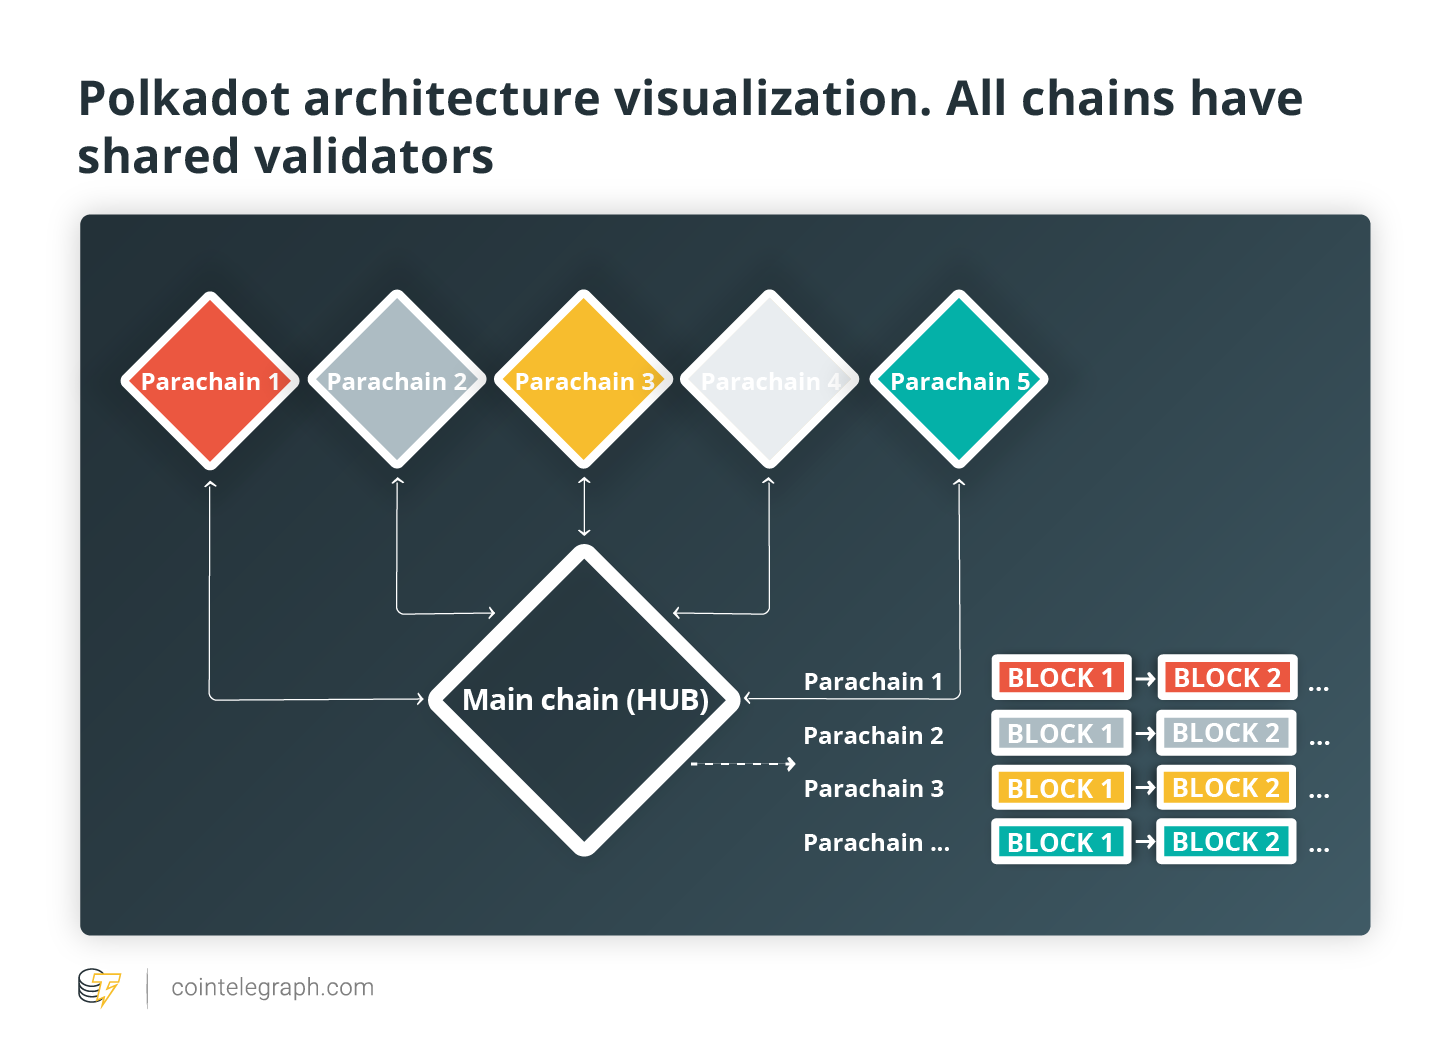 Polkadot architecture visualization. All chains have shared validators